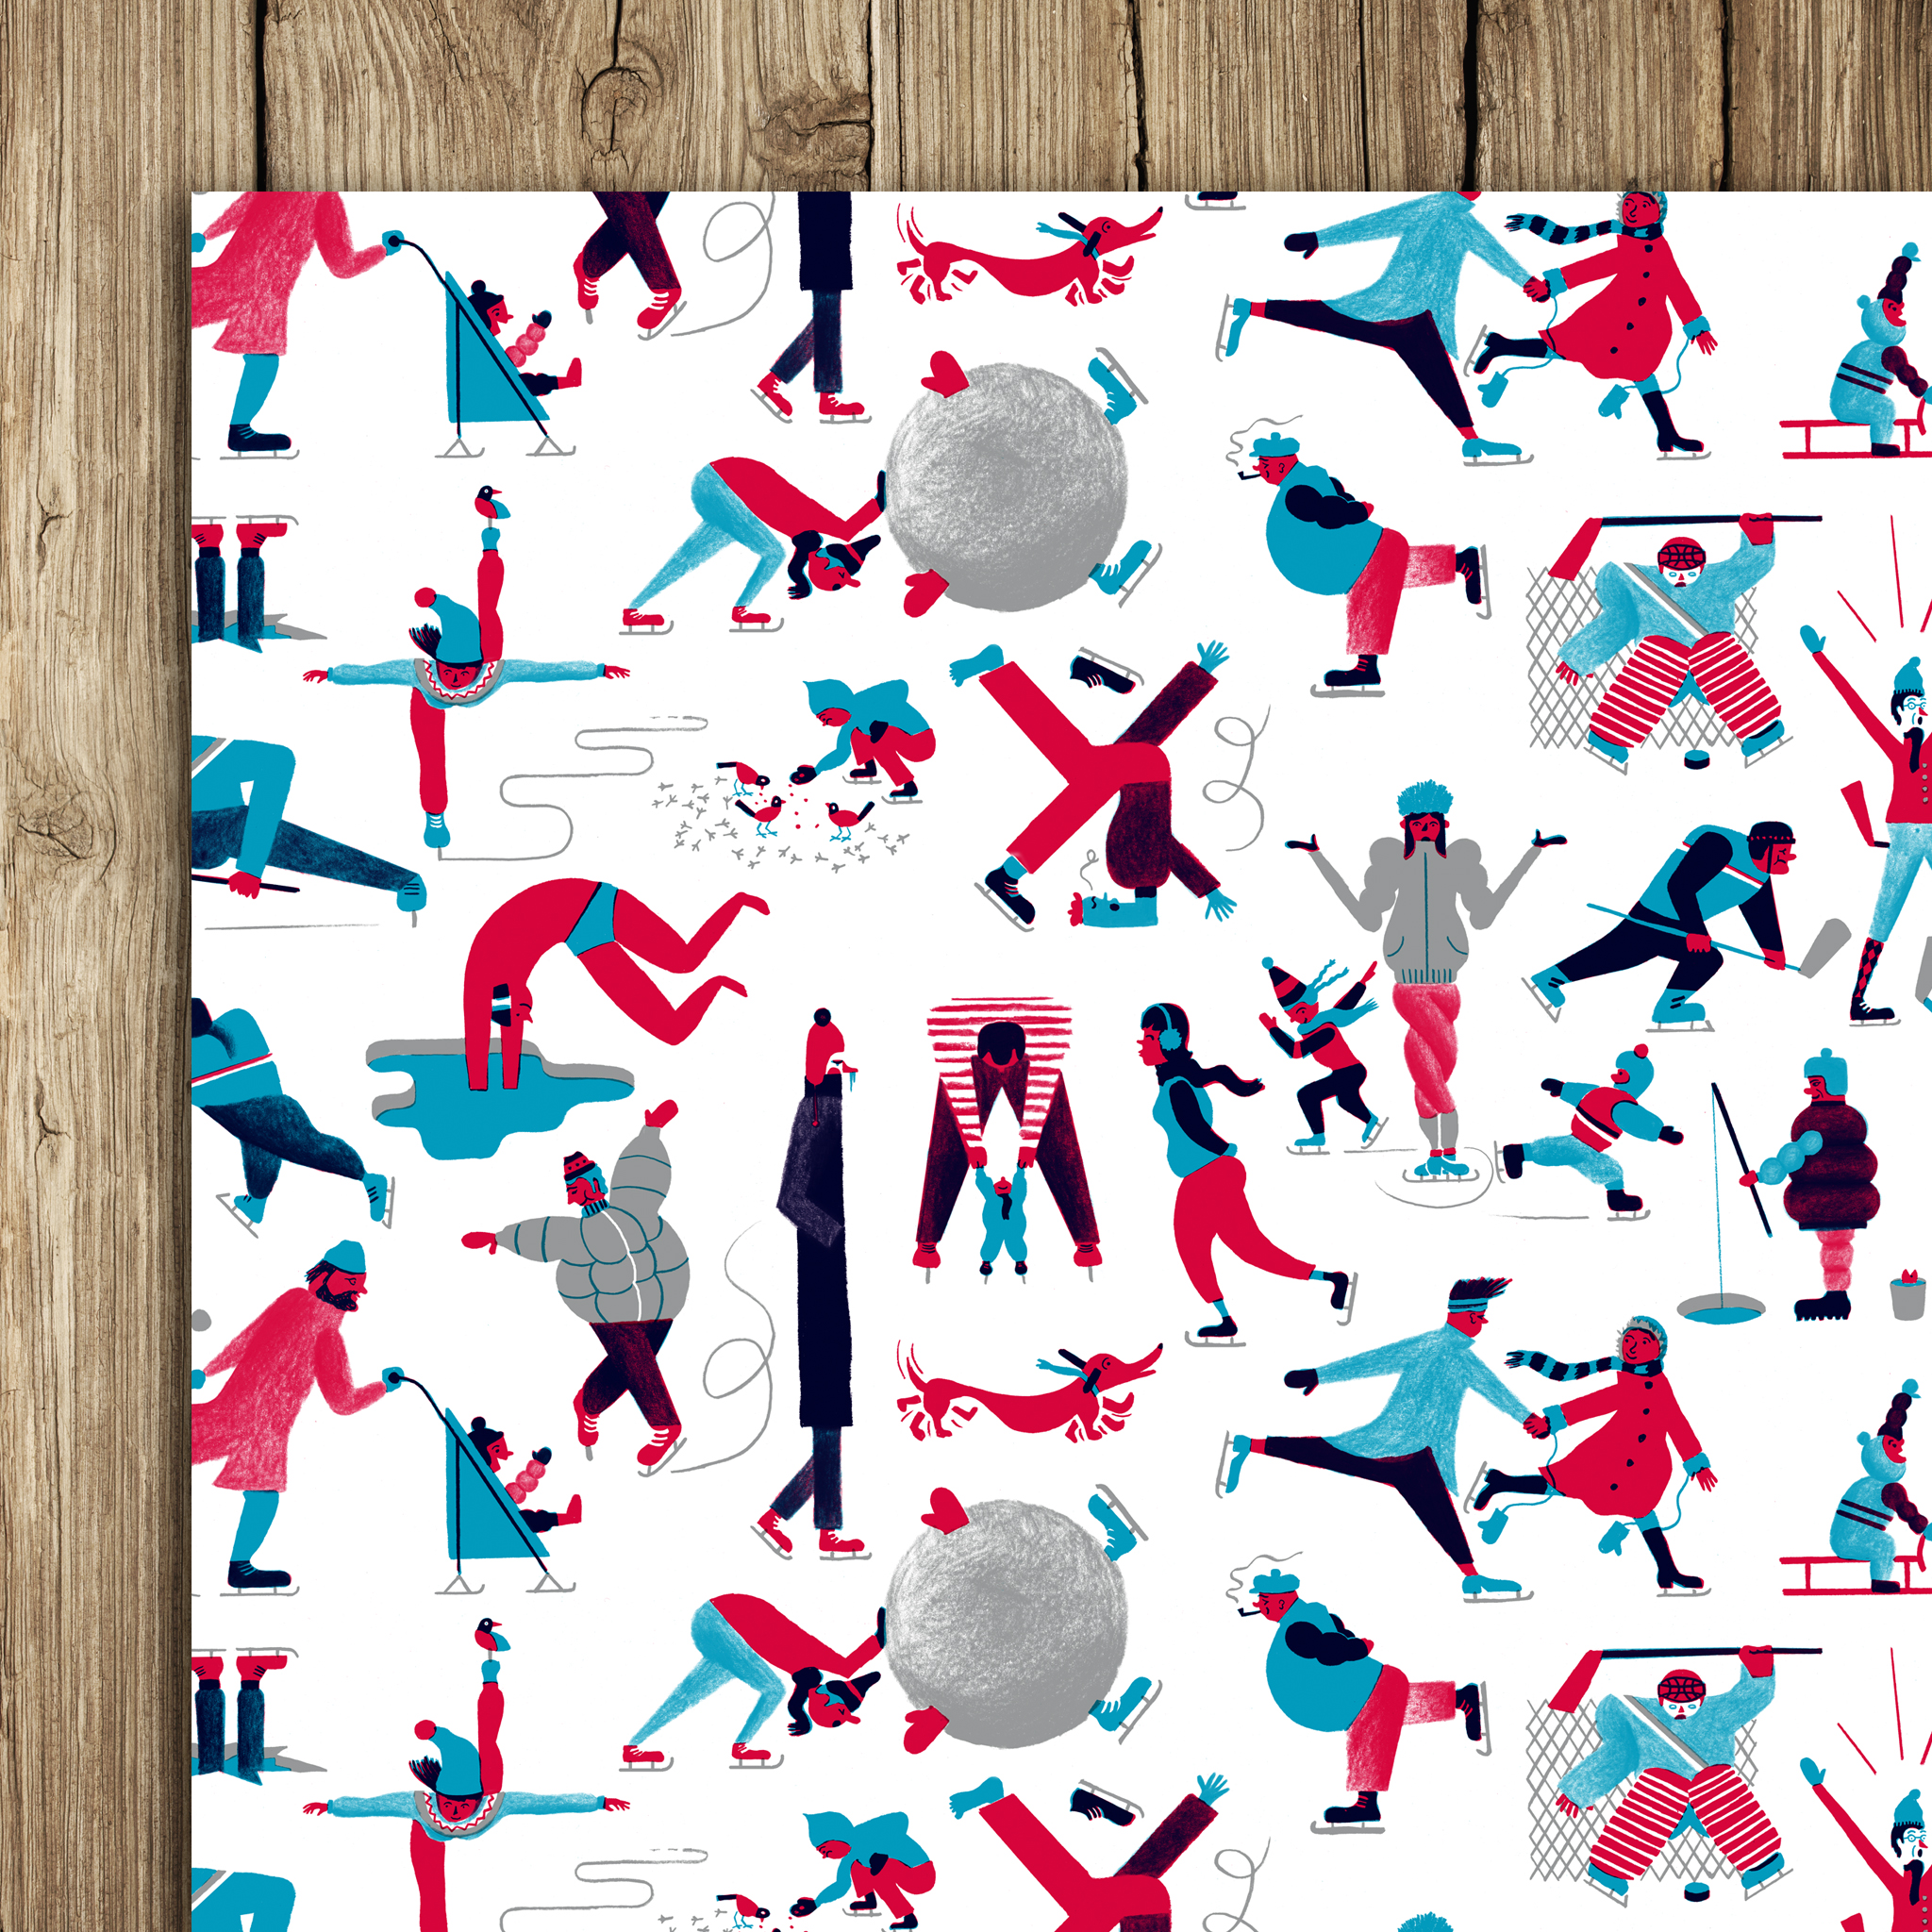 Icy Lake Skaters Wrap (5 sheets)